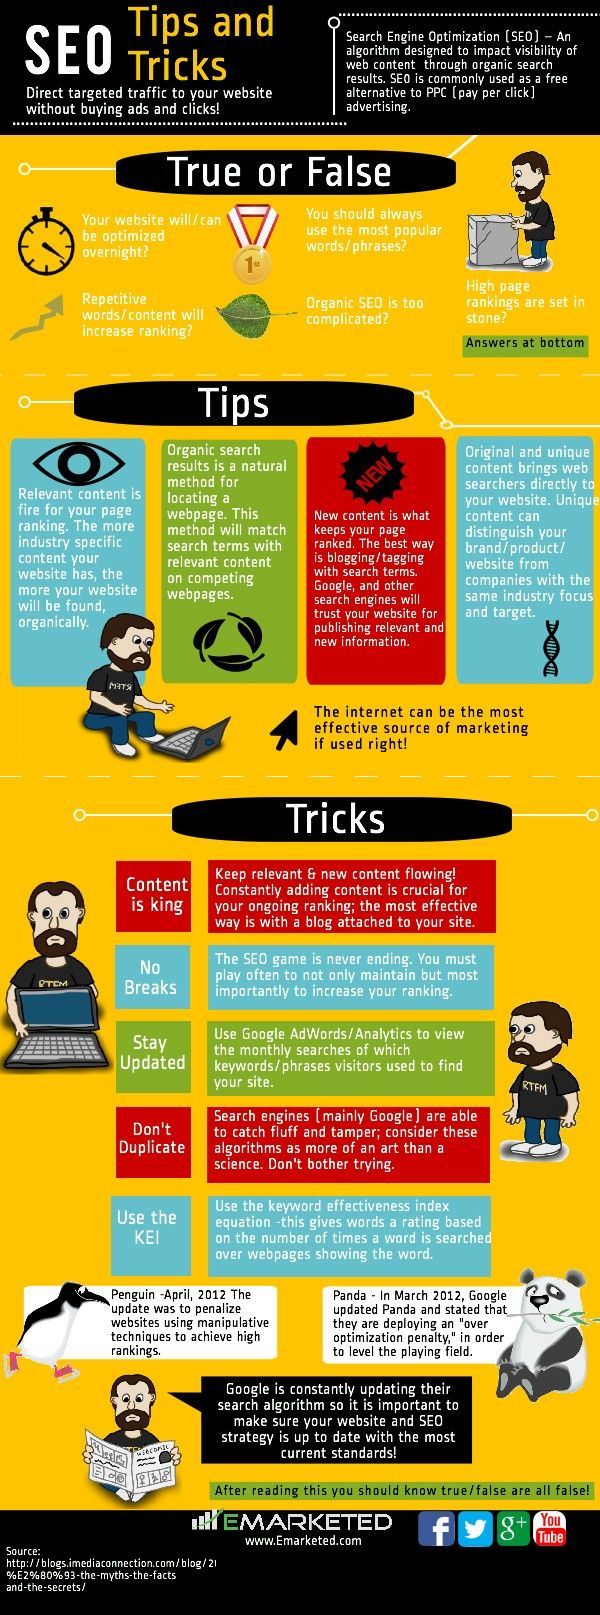 SEO Tips - We just created this great infographic that shows you a few of our tips and tricks about SEO. First, if you don't already know, search engine optimization (SEO) is basically an algorithm that affects how visible content is on the web.